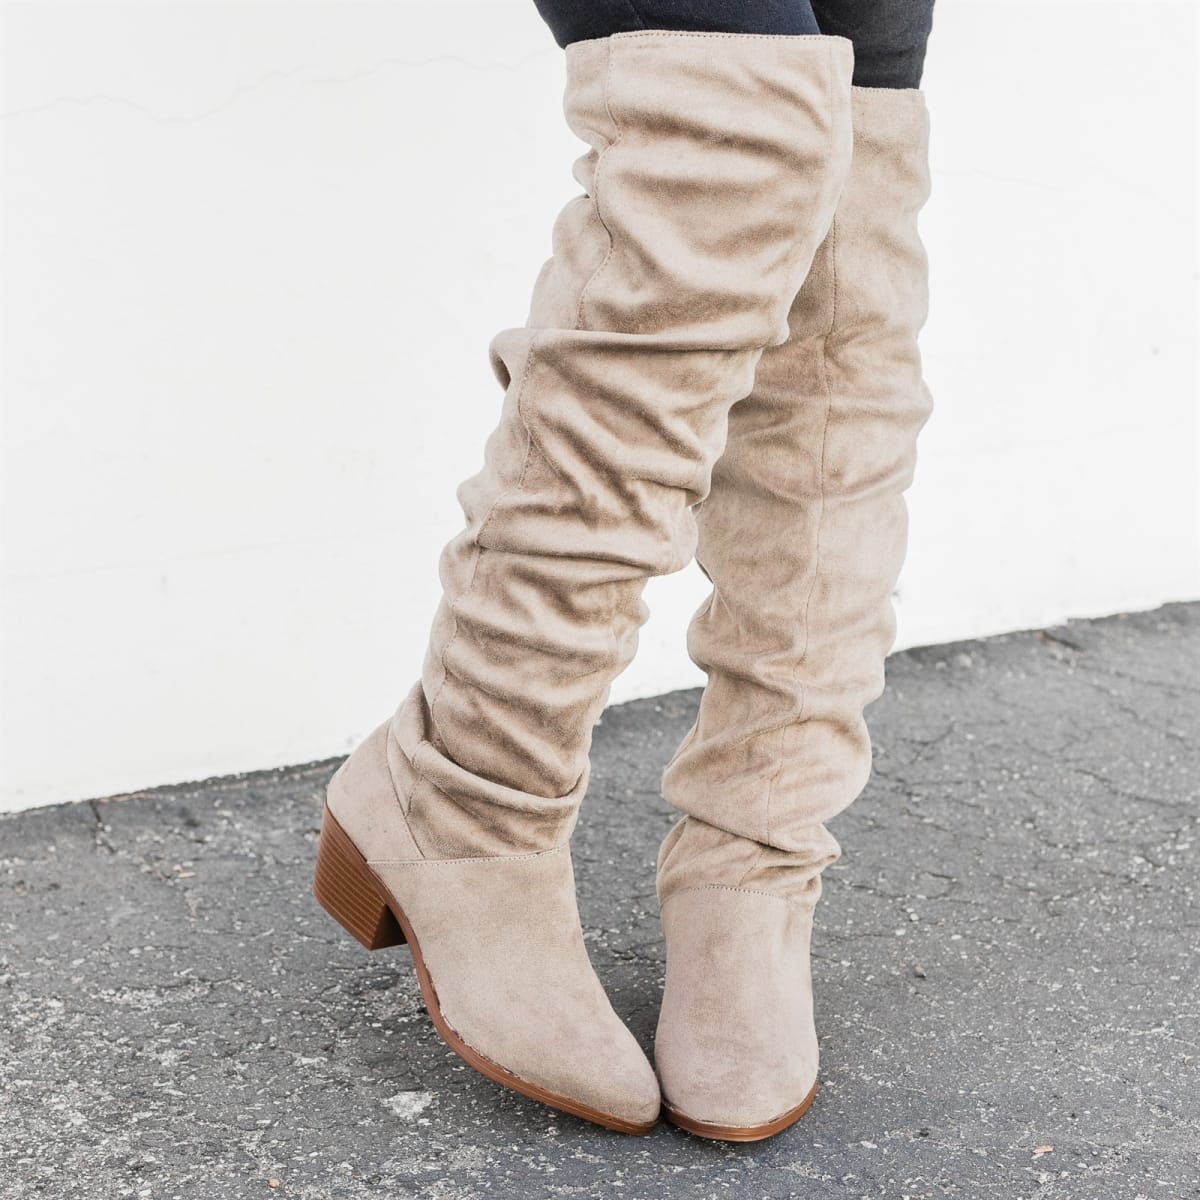 733e50a53e3 51%You save. 0 00 00Time Left. Expired. Fall Knee-High Slouchy Boots